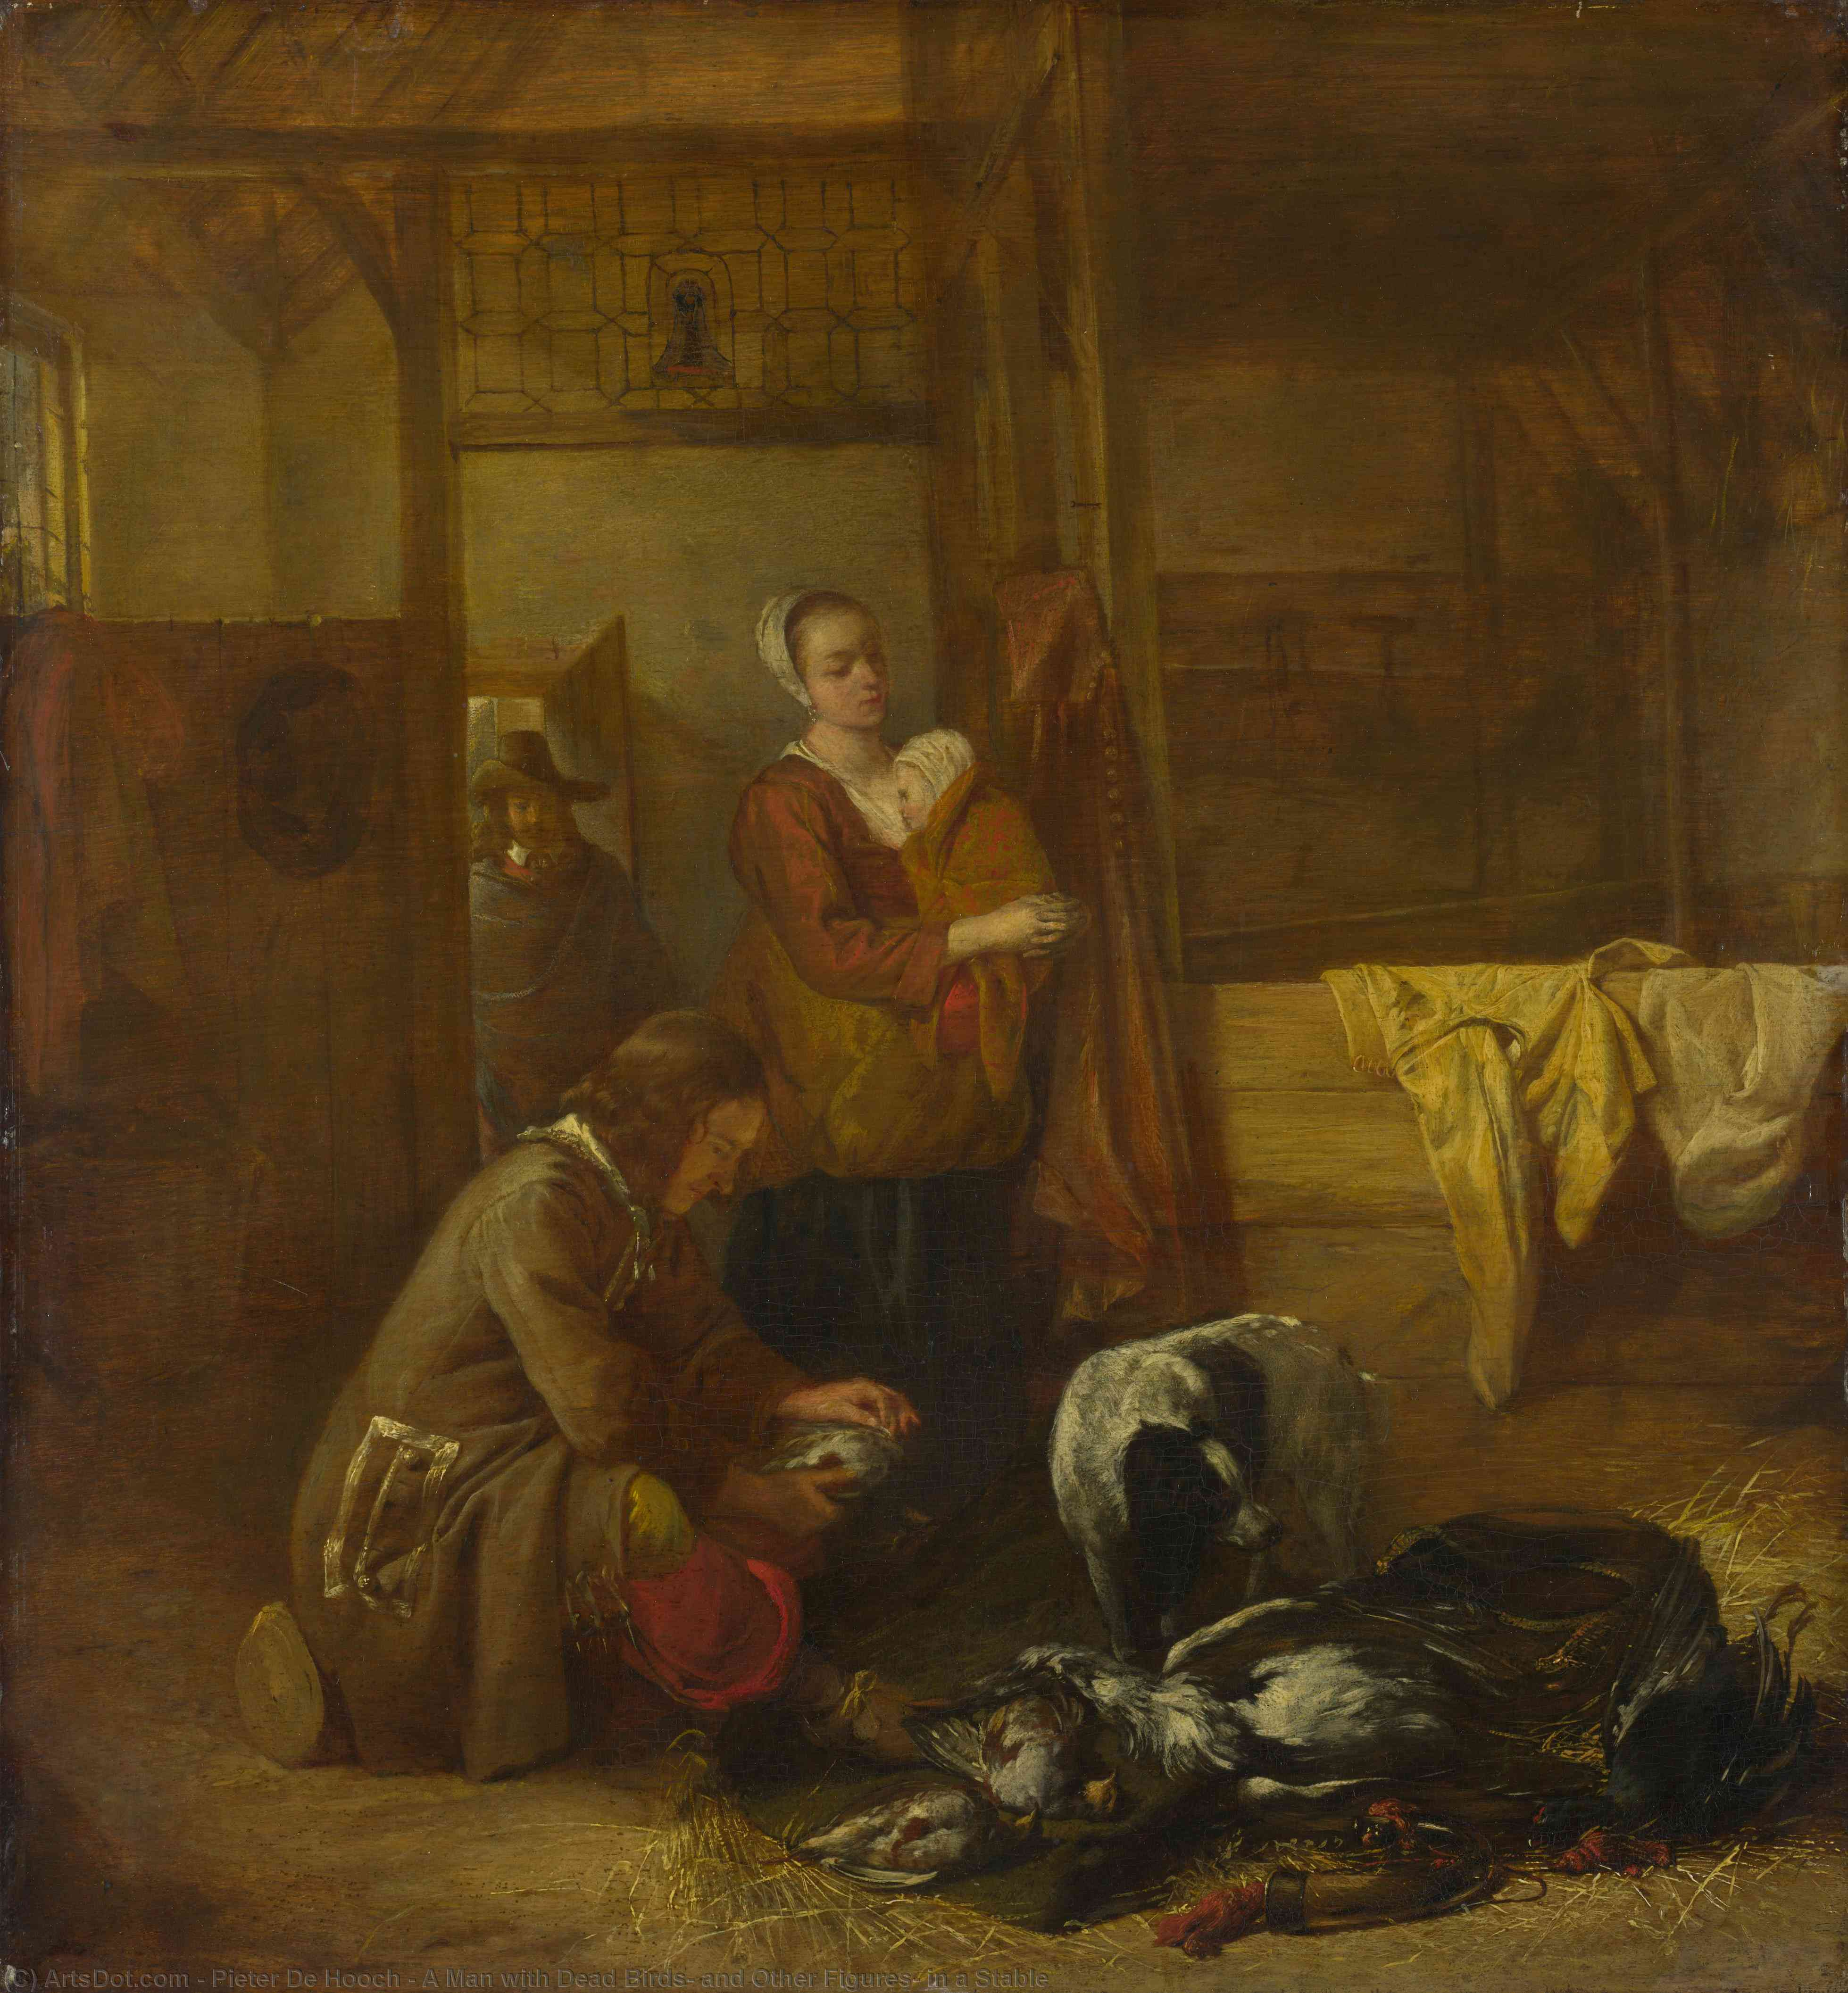 Wikioo.org - The Encyclopedia of Fine Arts - Painting, Artwork by Pieter De Hooch - A Man with Dead Birds, and Other Figures, in a Stable